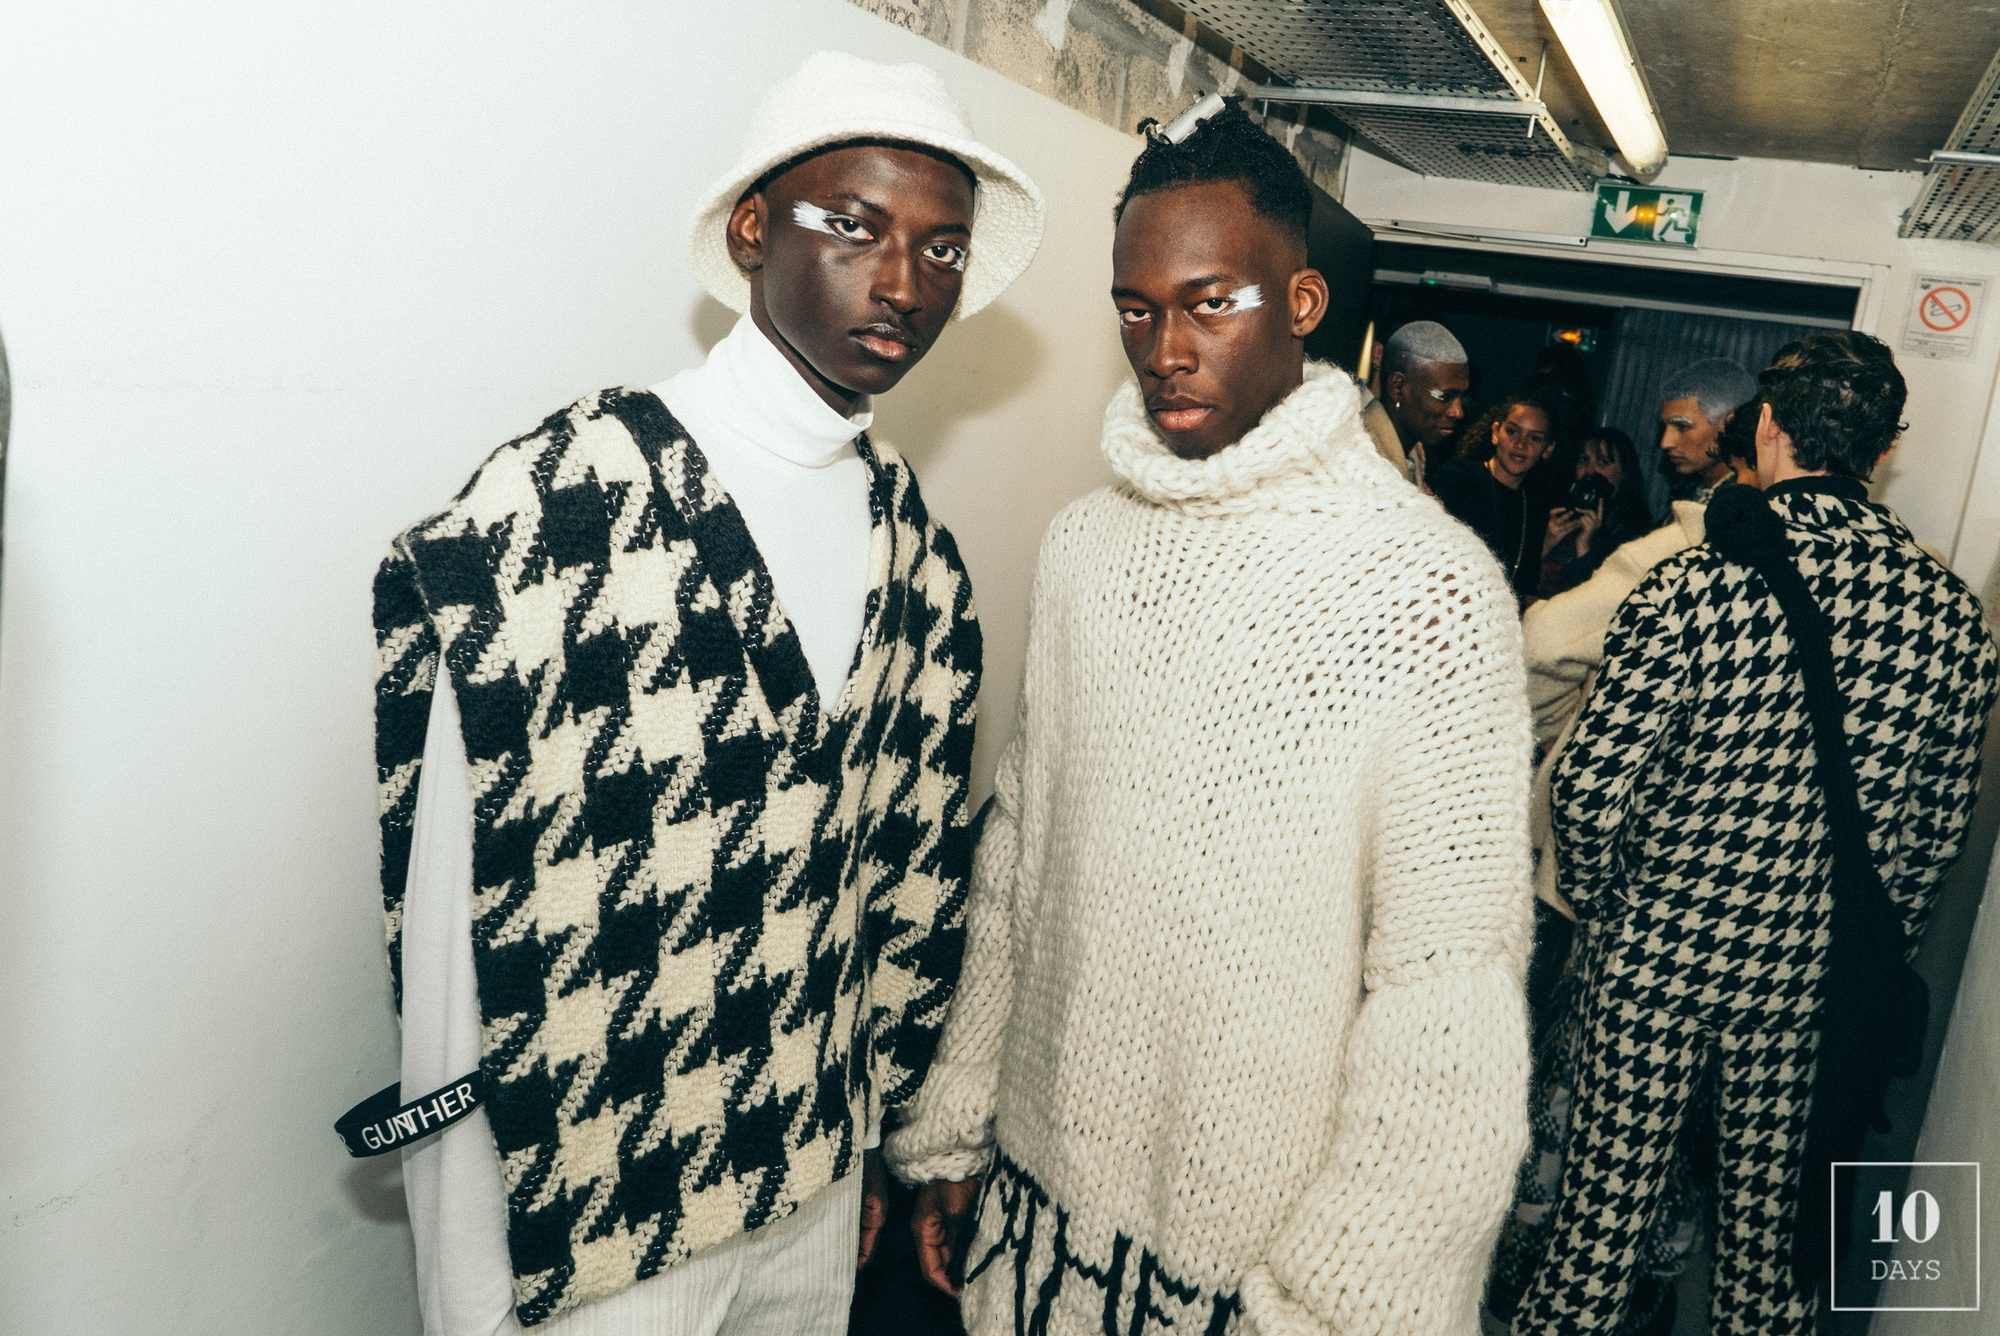 GUNTHER AW20/21 BACKSTAGE